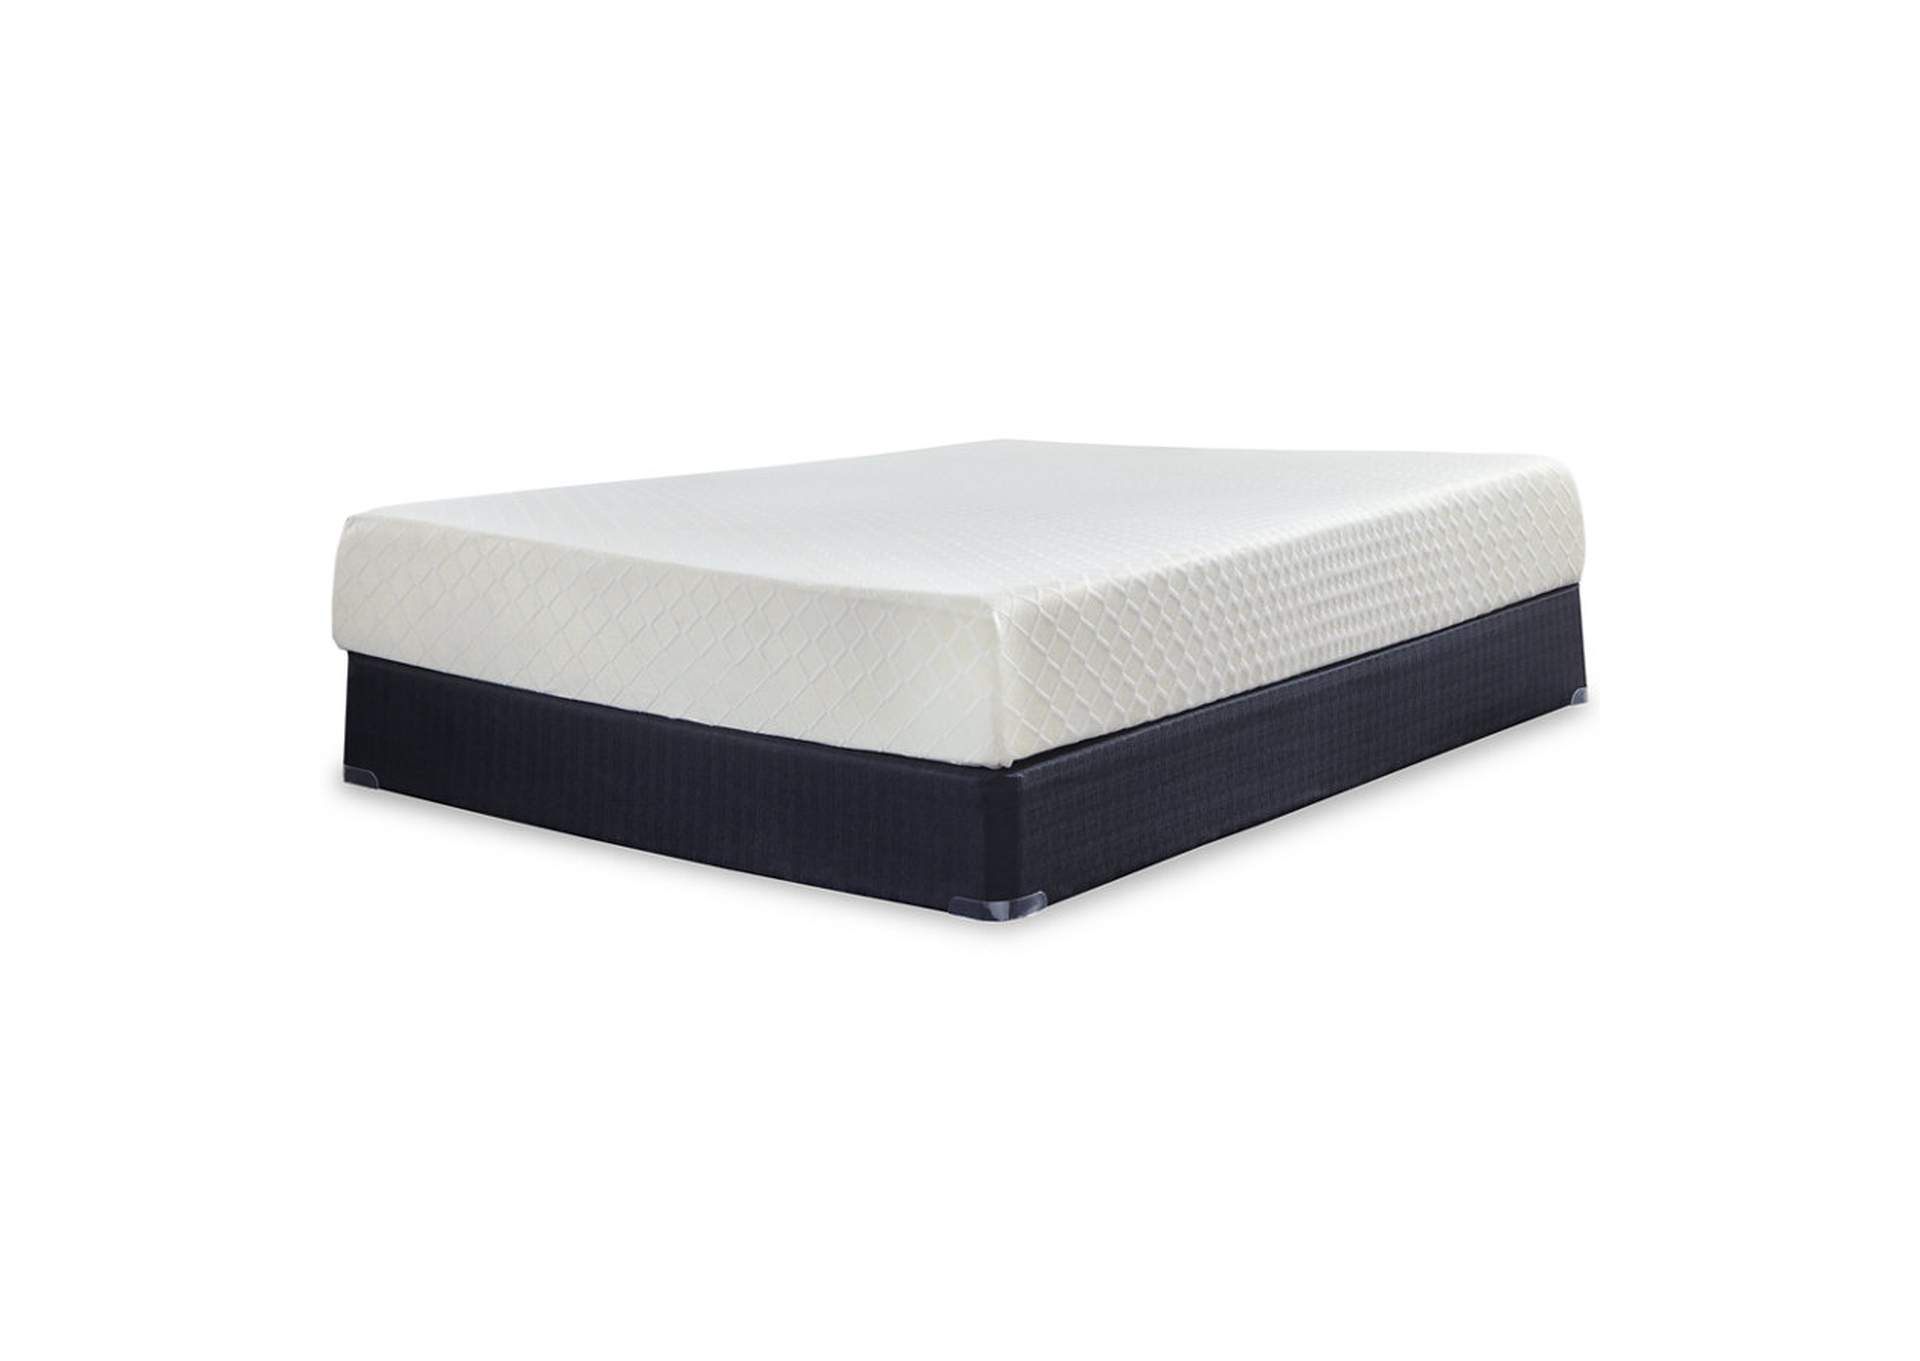 10 Inch Chime Memory Foam Twin Mattress in a Box w/Foundation,Sierra Sleep by Ashley